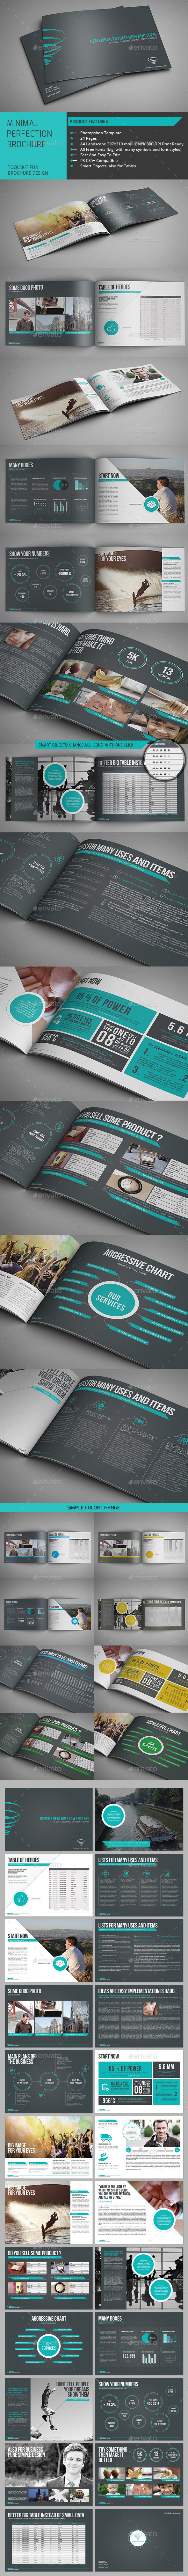 GraphicRiver Minimal Perfection Brochure 9934951